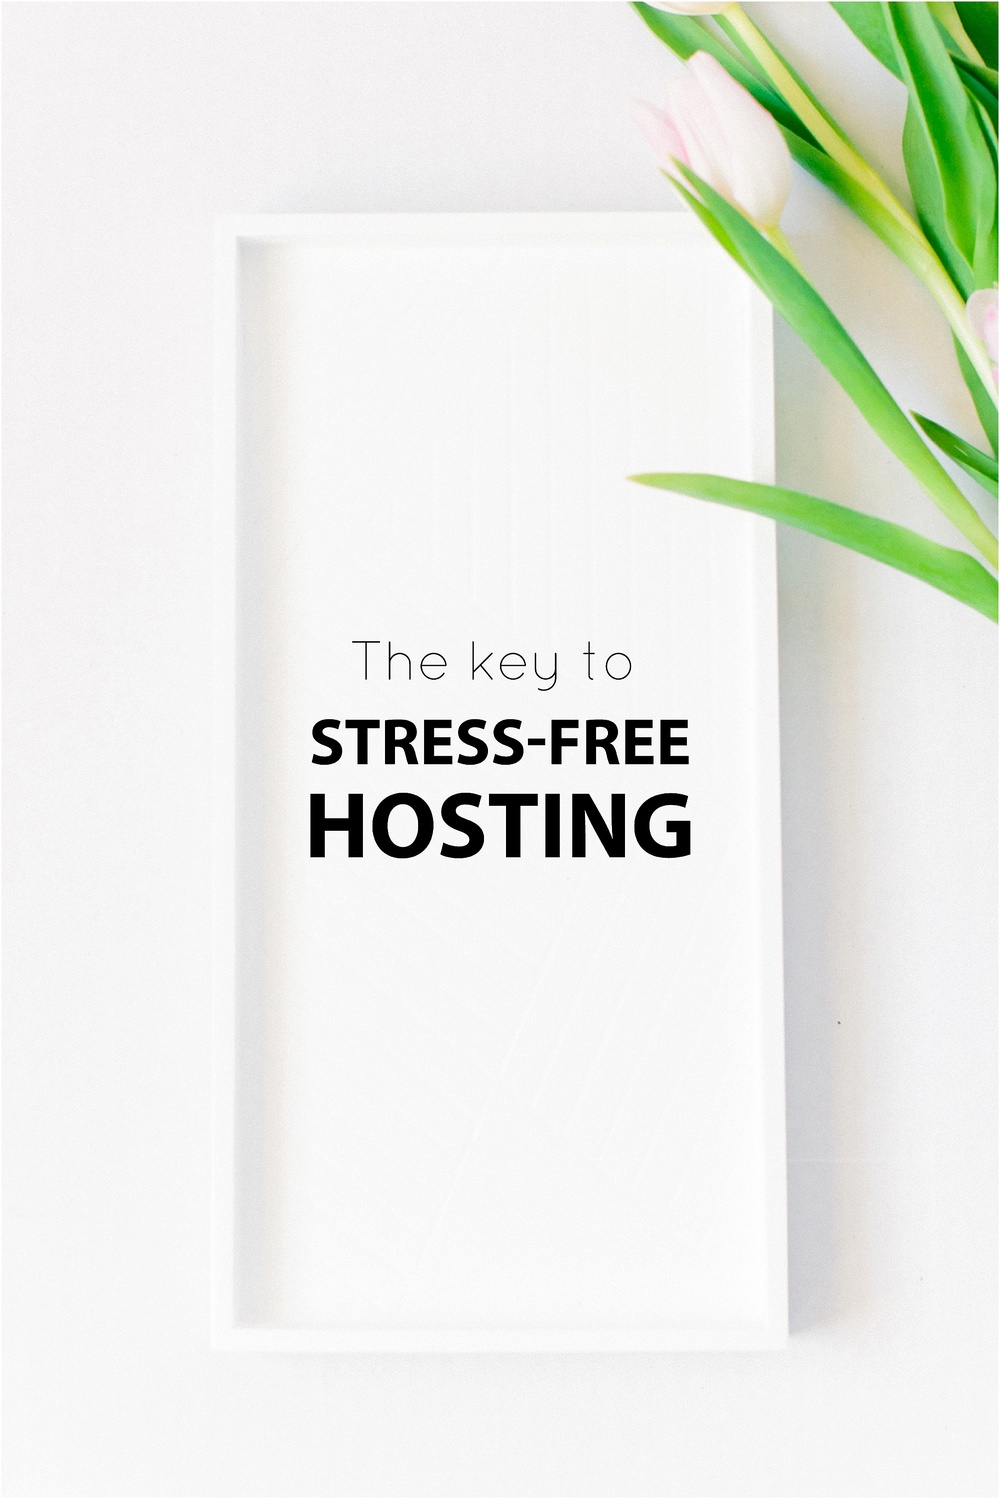 The Key to Stress-Free Hosting with He Loves Me Flowers + Jordan Brittley (www.jordanbrittleyblog.com)